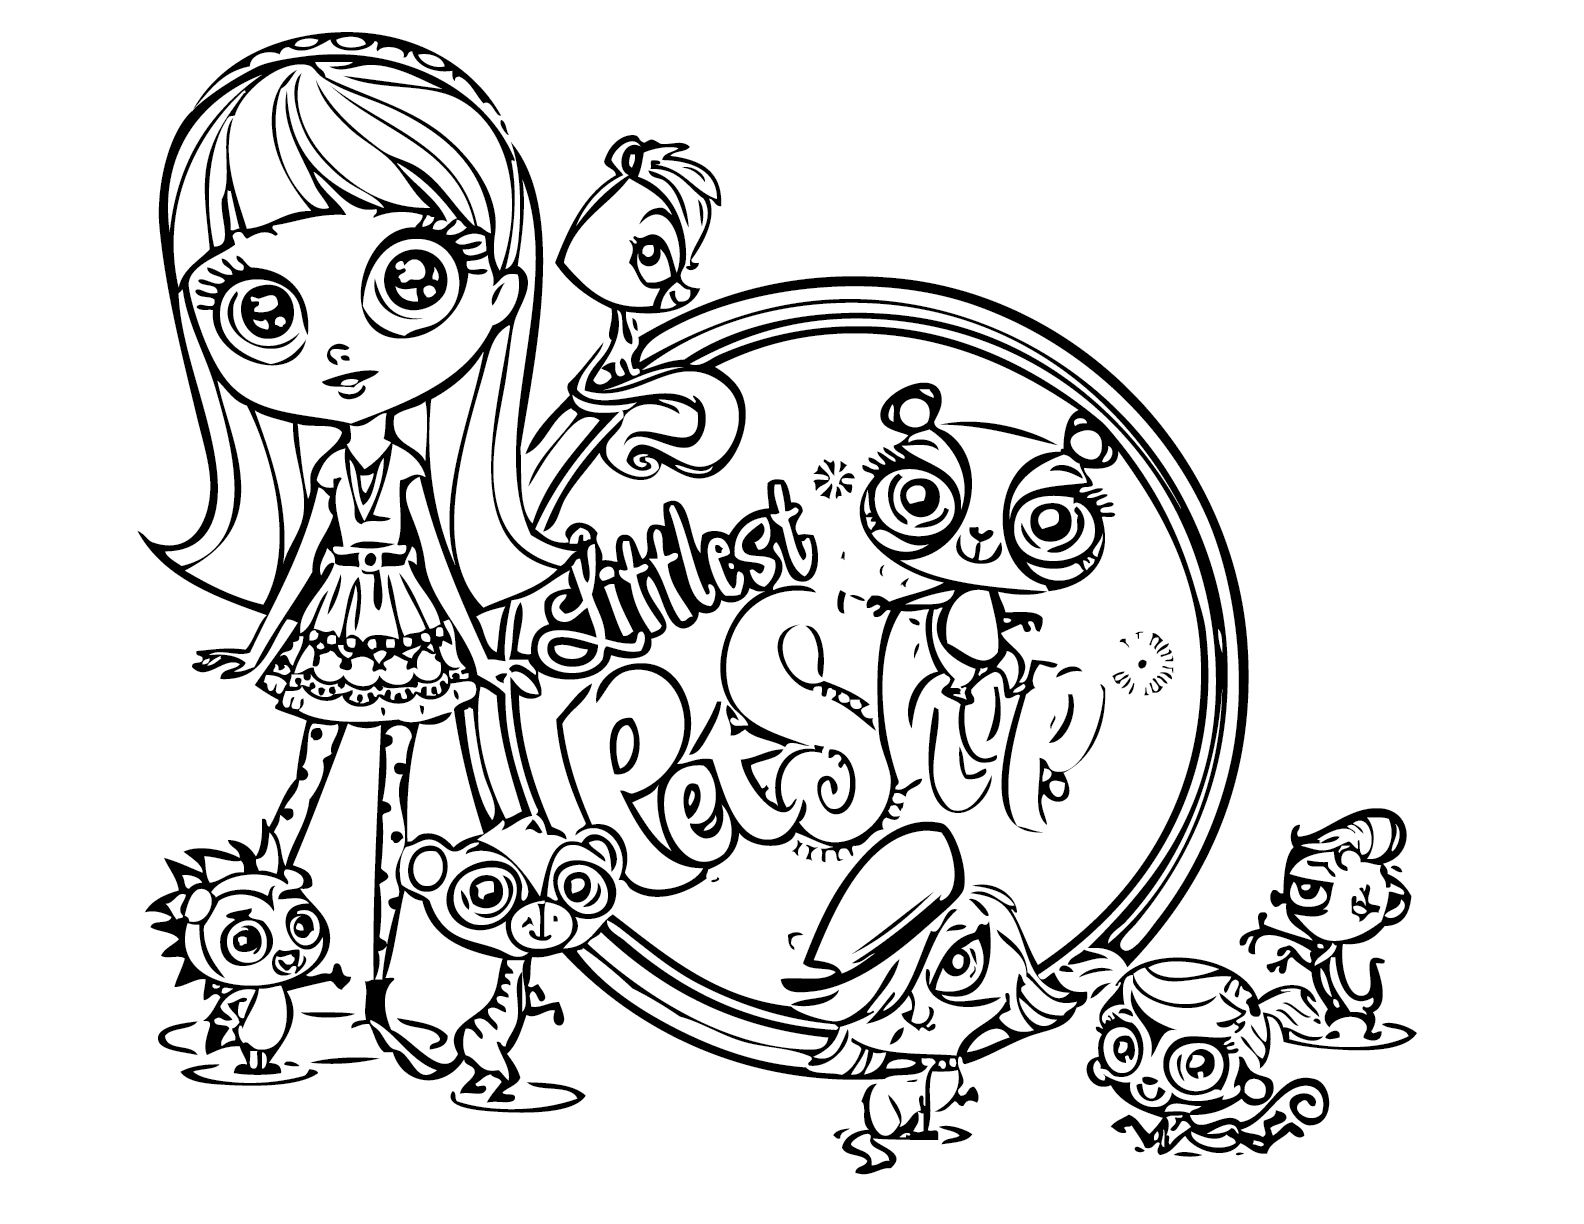 Littlest Pet Shop Coloring Pages Jpg 1584 1224 Minis